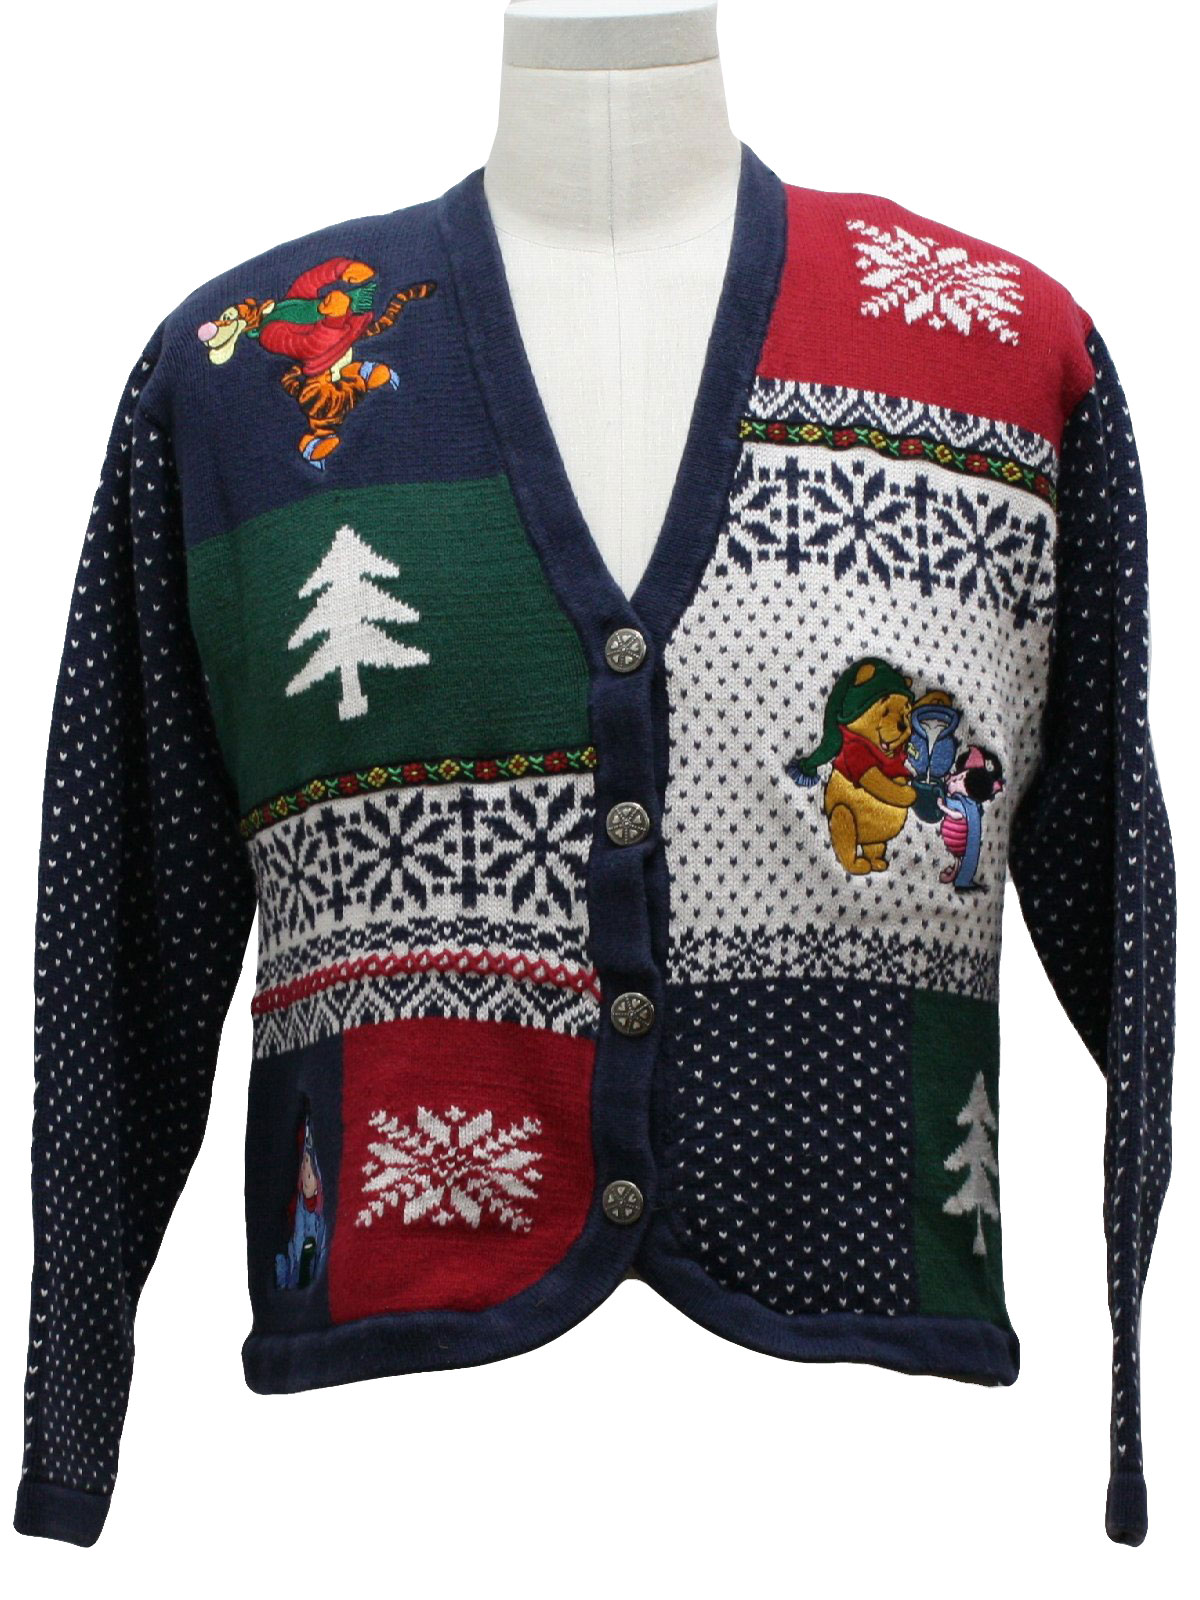 Womens Ugly Christmas Sweater: -Disney Store- Womens blue ...